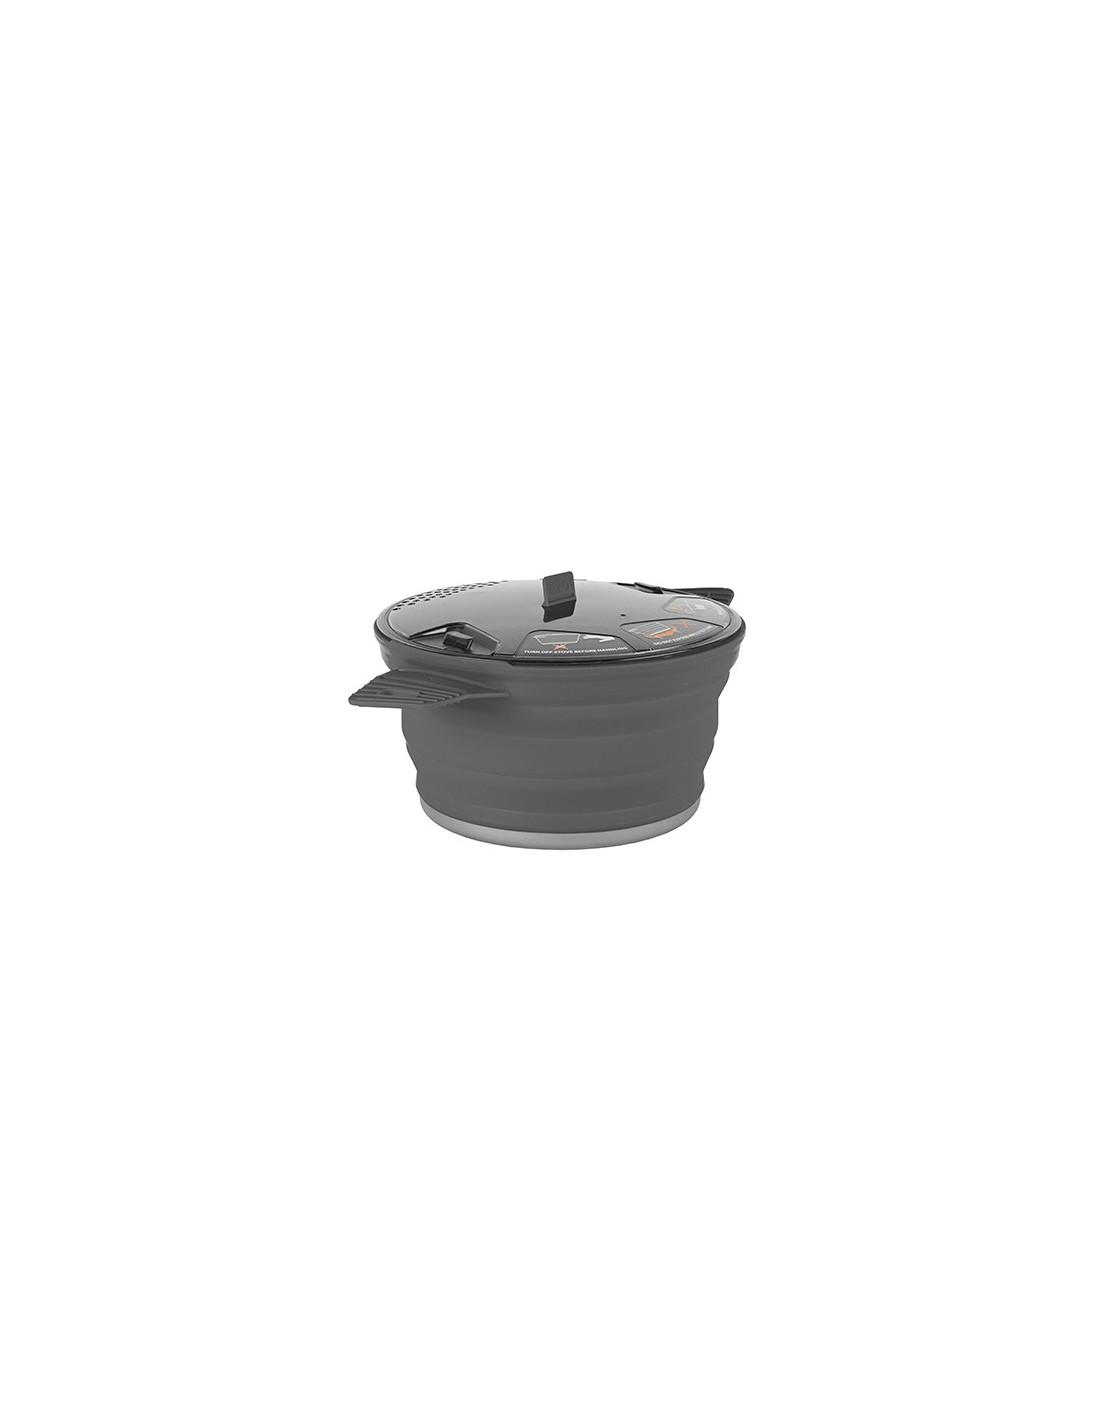 Sea To Summit X-Pot 2.8L Grey Geschirrart - Töpfe,